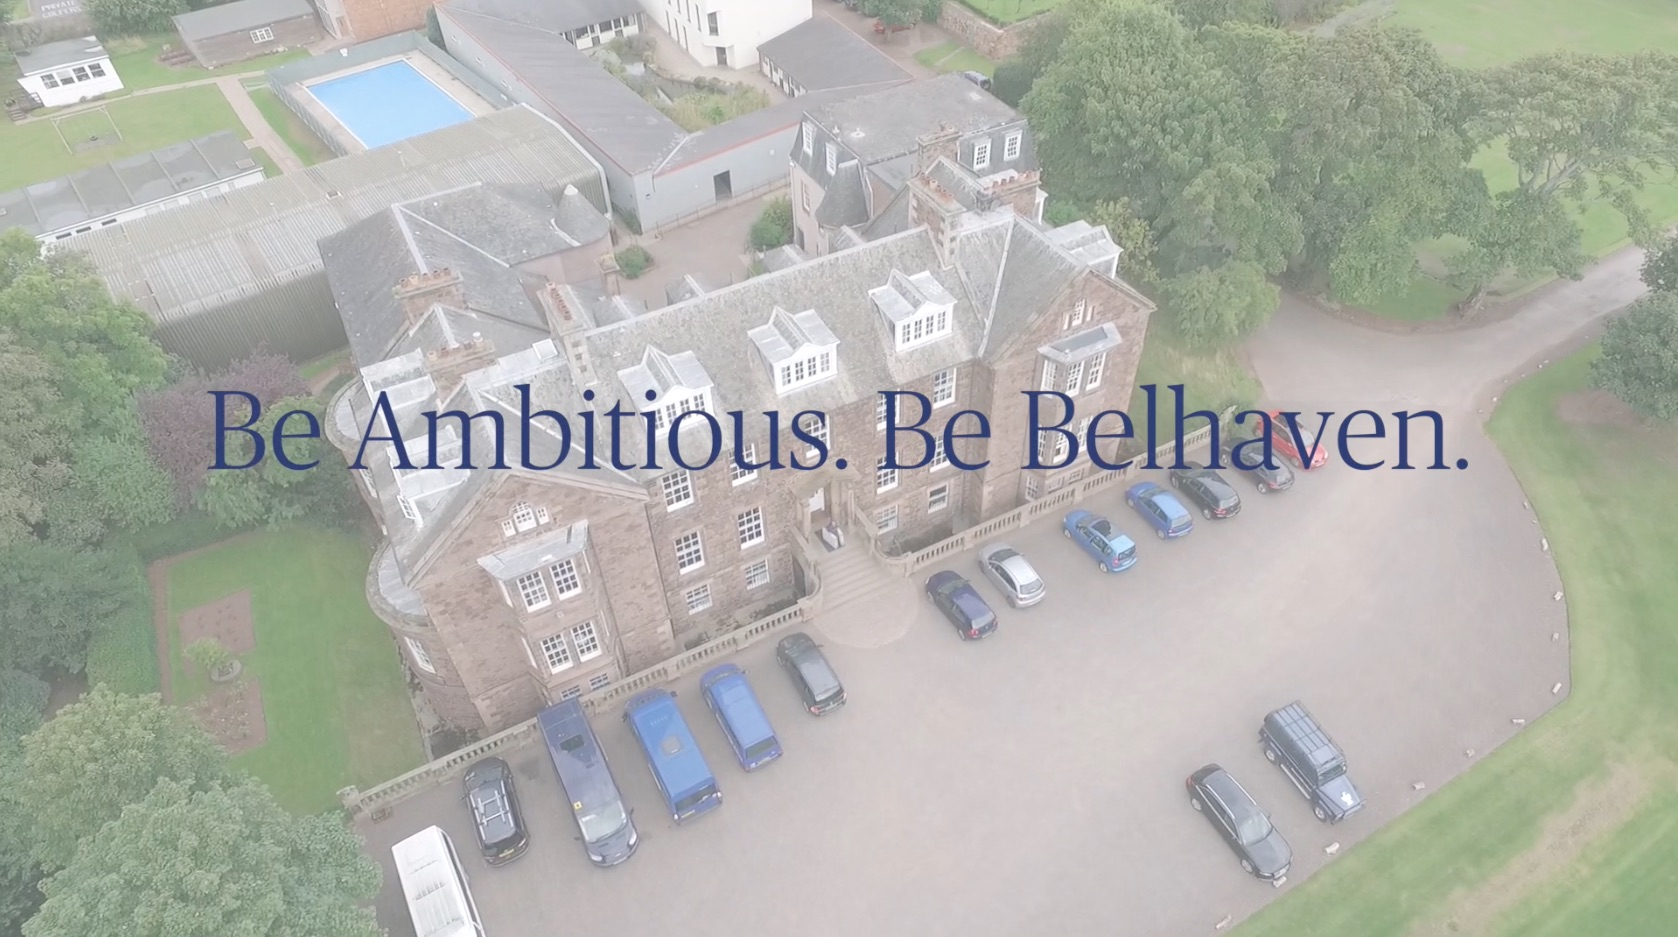 Client: Belhaven Hill SchoolA very fun and light hearted commercial for Belhaven Hill boarding and prep school in Dunbar, East Lothian. This was a great day of filming full of energy and lots of running around.Drone footage by Ear Trumpet Media.